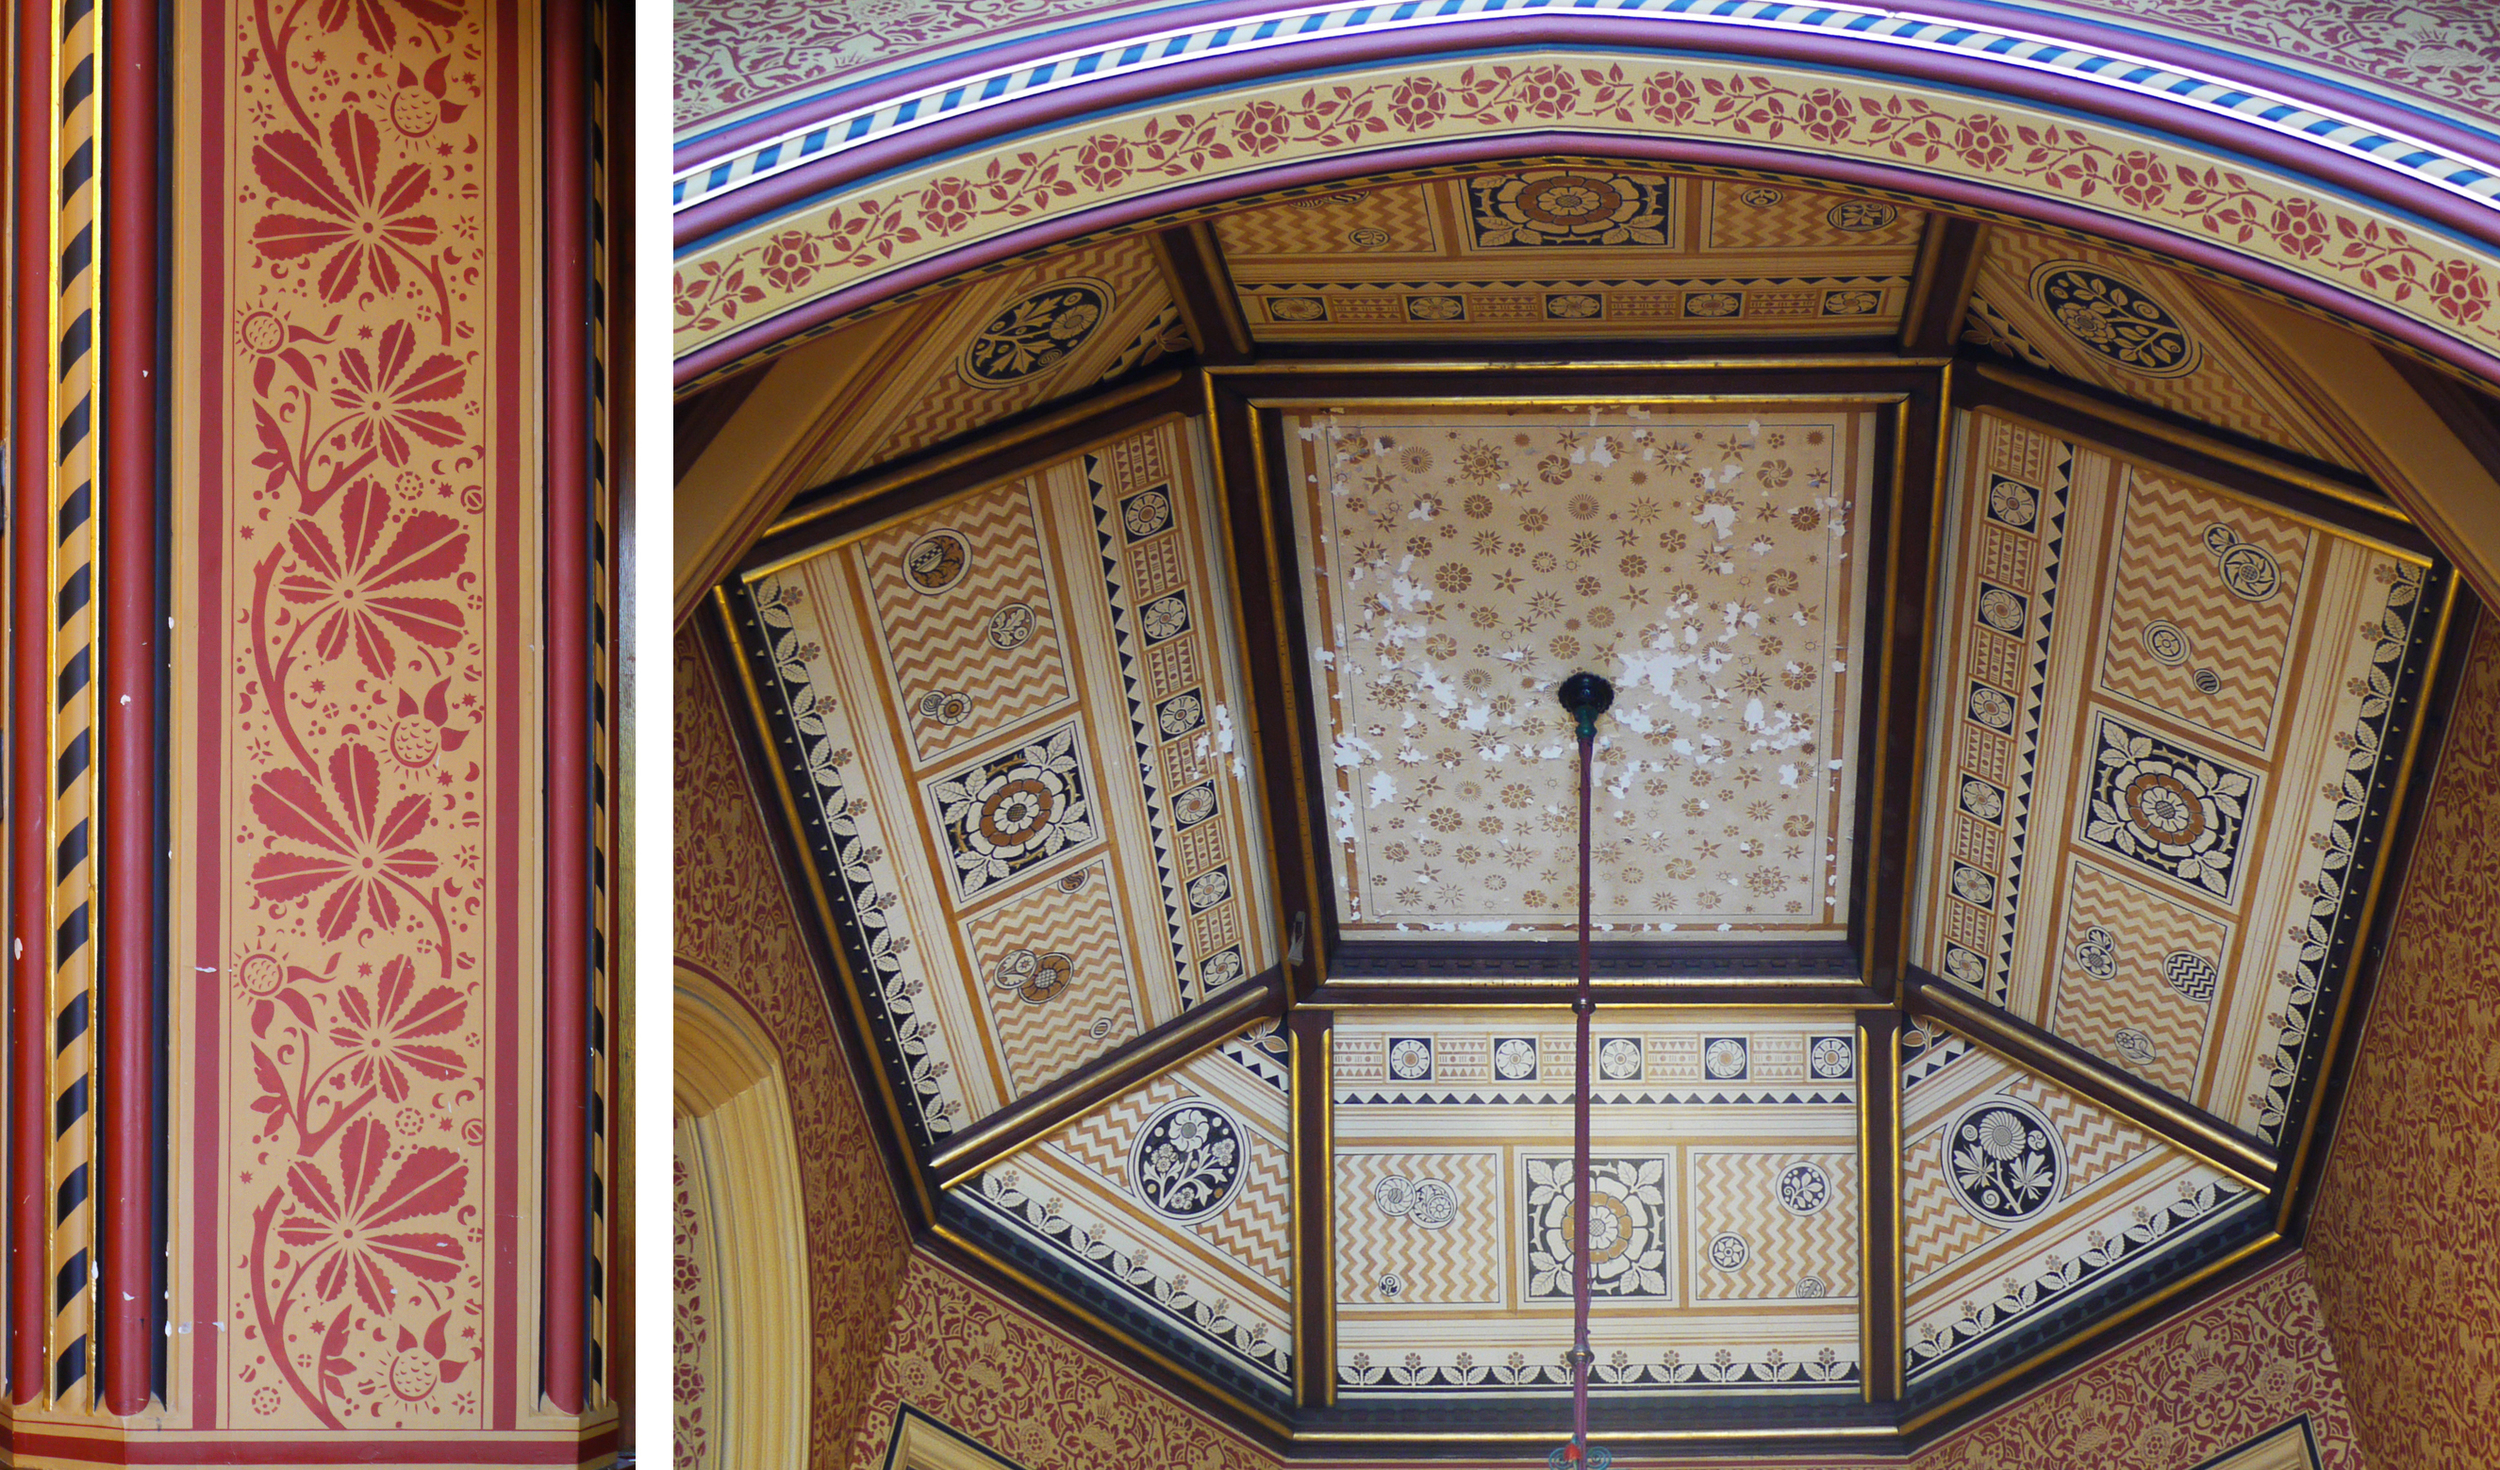 In the south vestibule, horse chestnut motif around the door frame and original patterned ceiling.